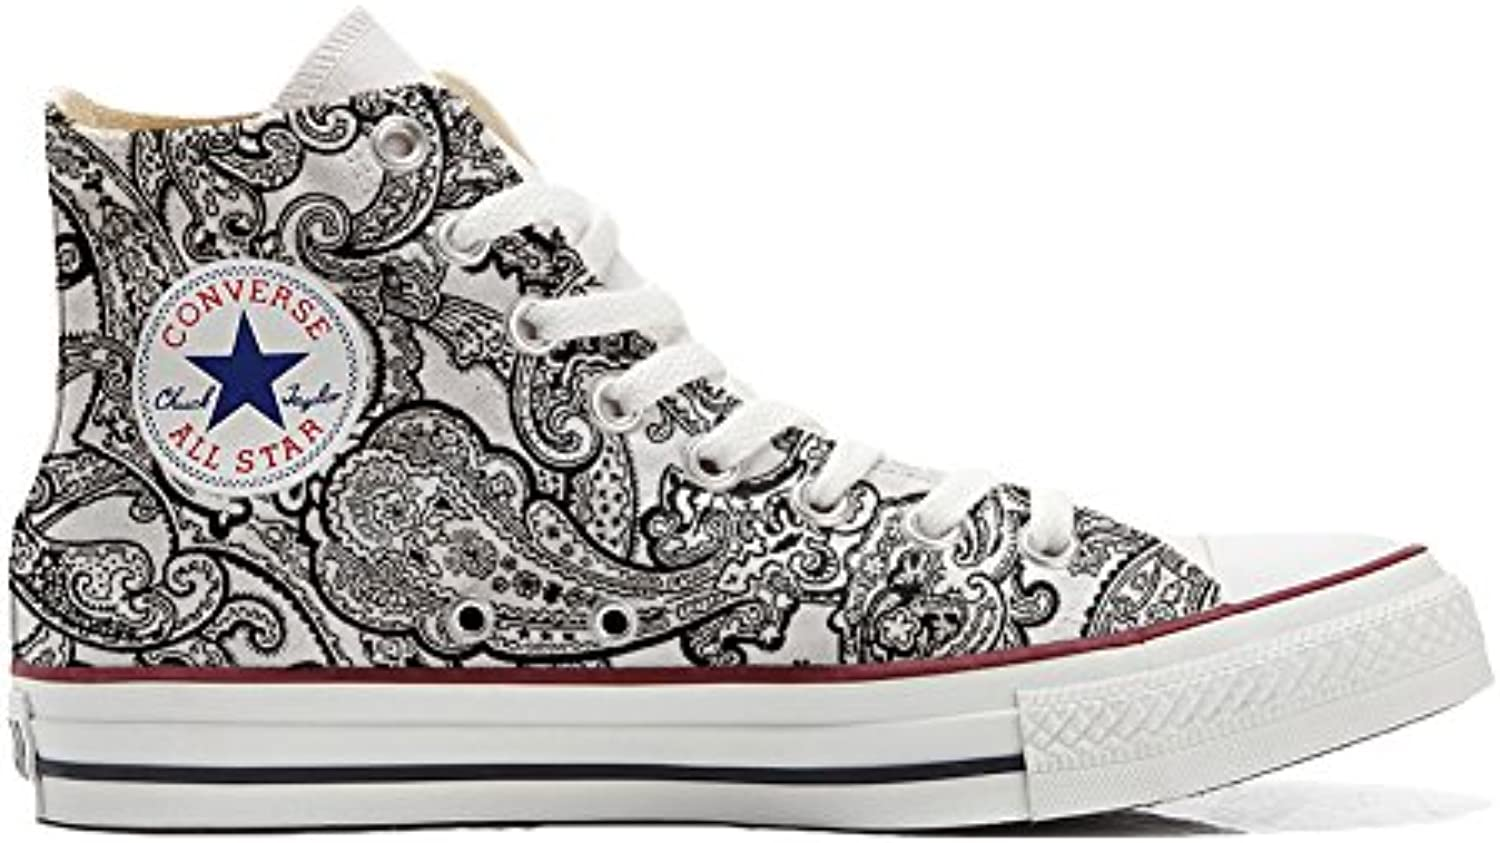 Converse All Star Zapatos Personalizados (Producto Handmade) My Little Kitten -